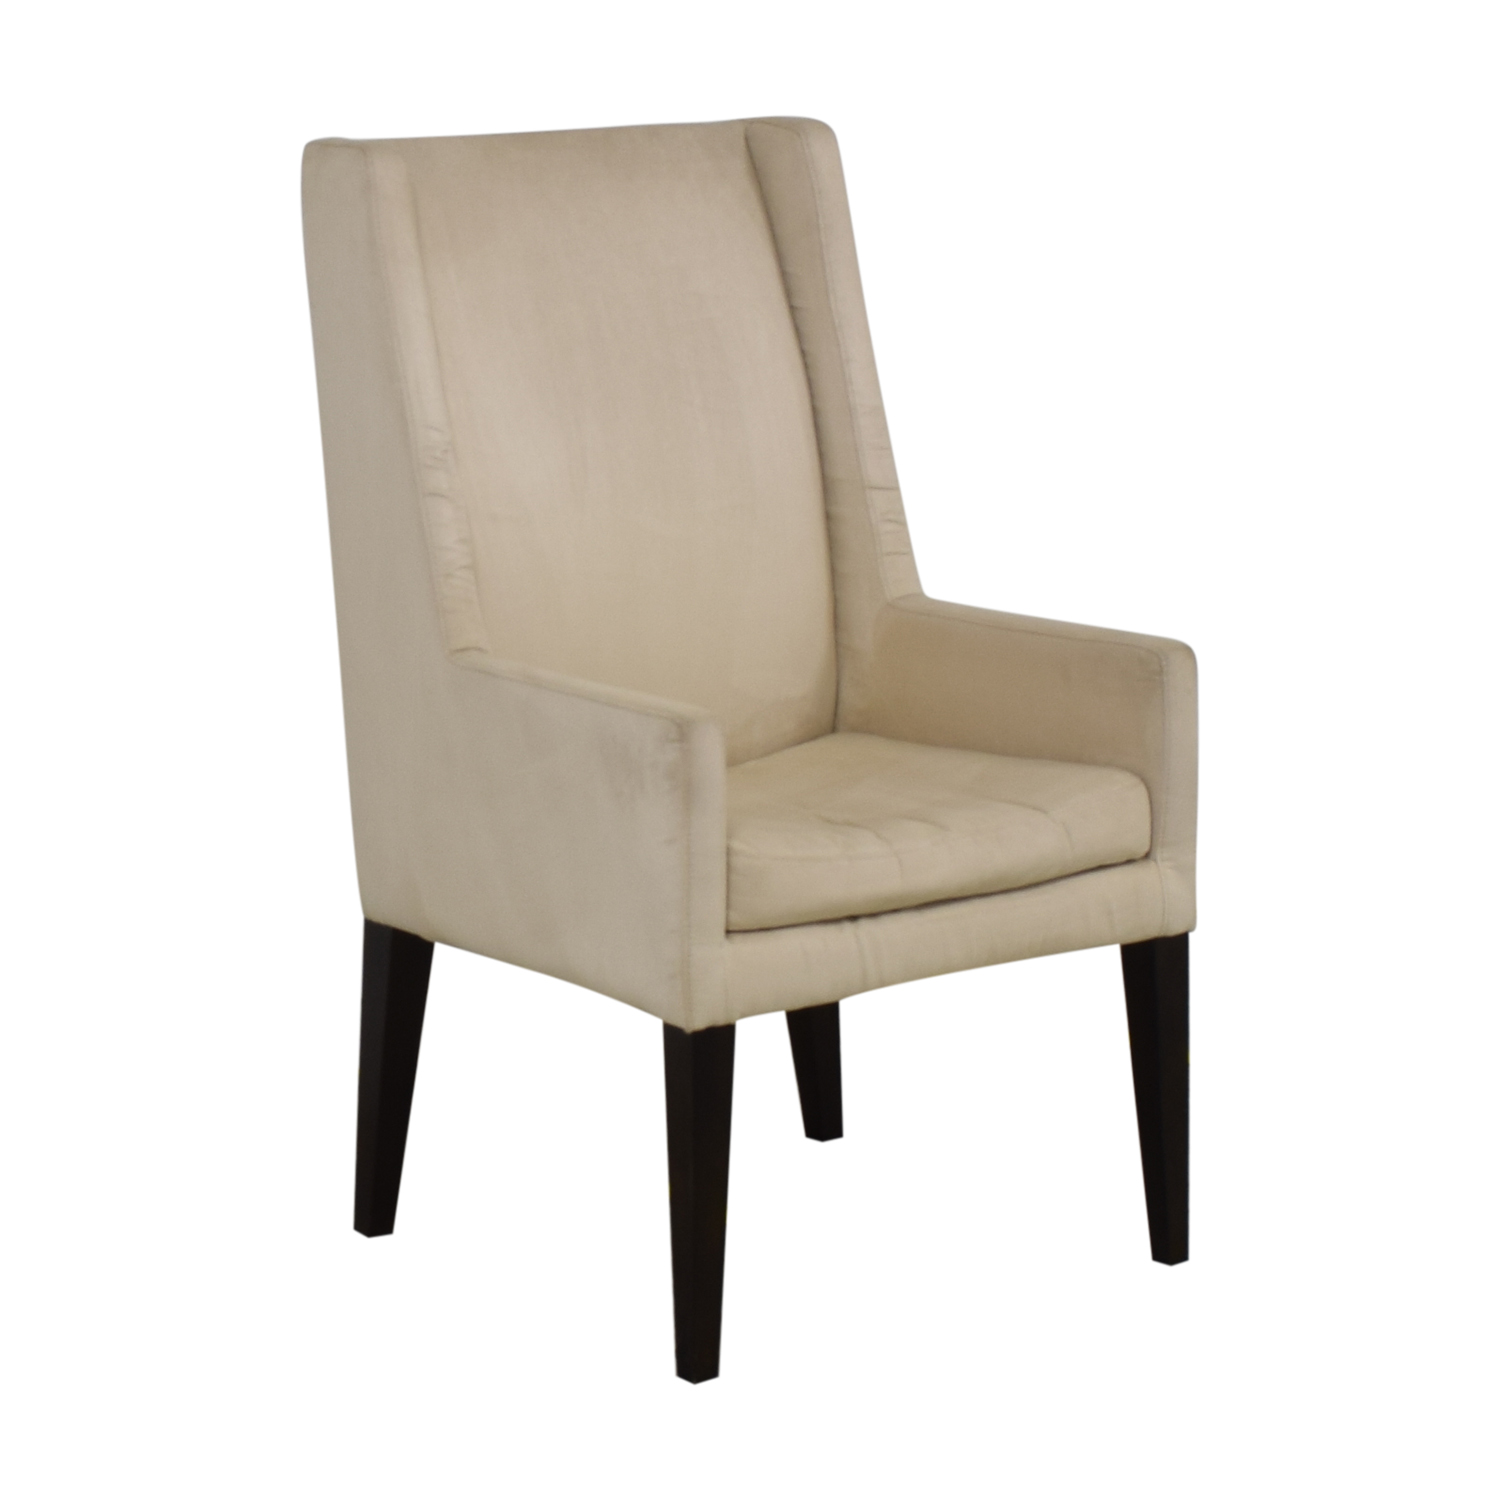 West Elm West Elm Modern Wing Chair dimensions